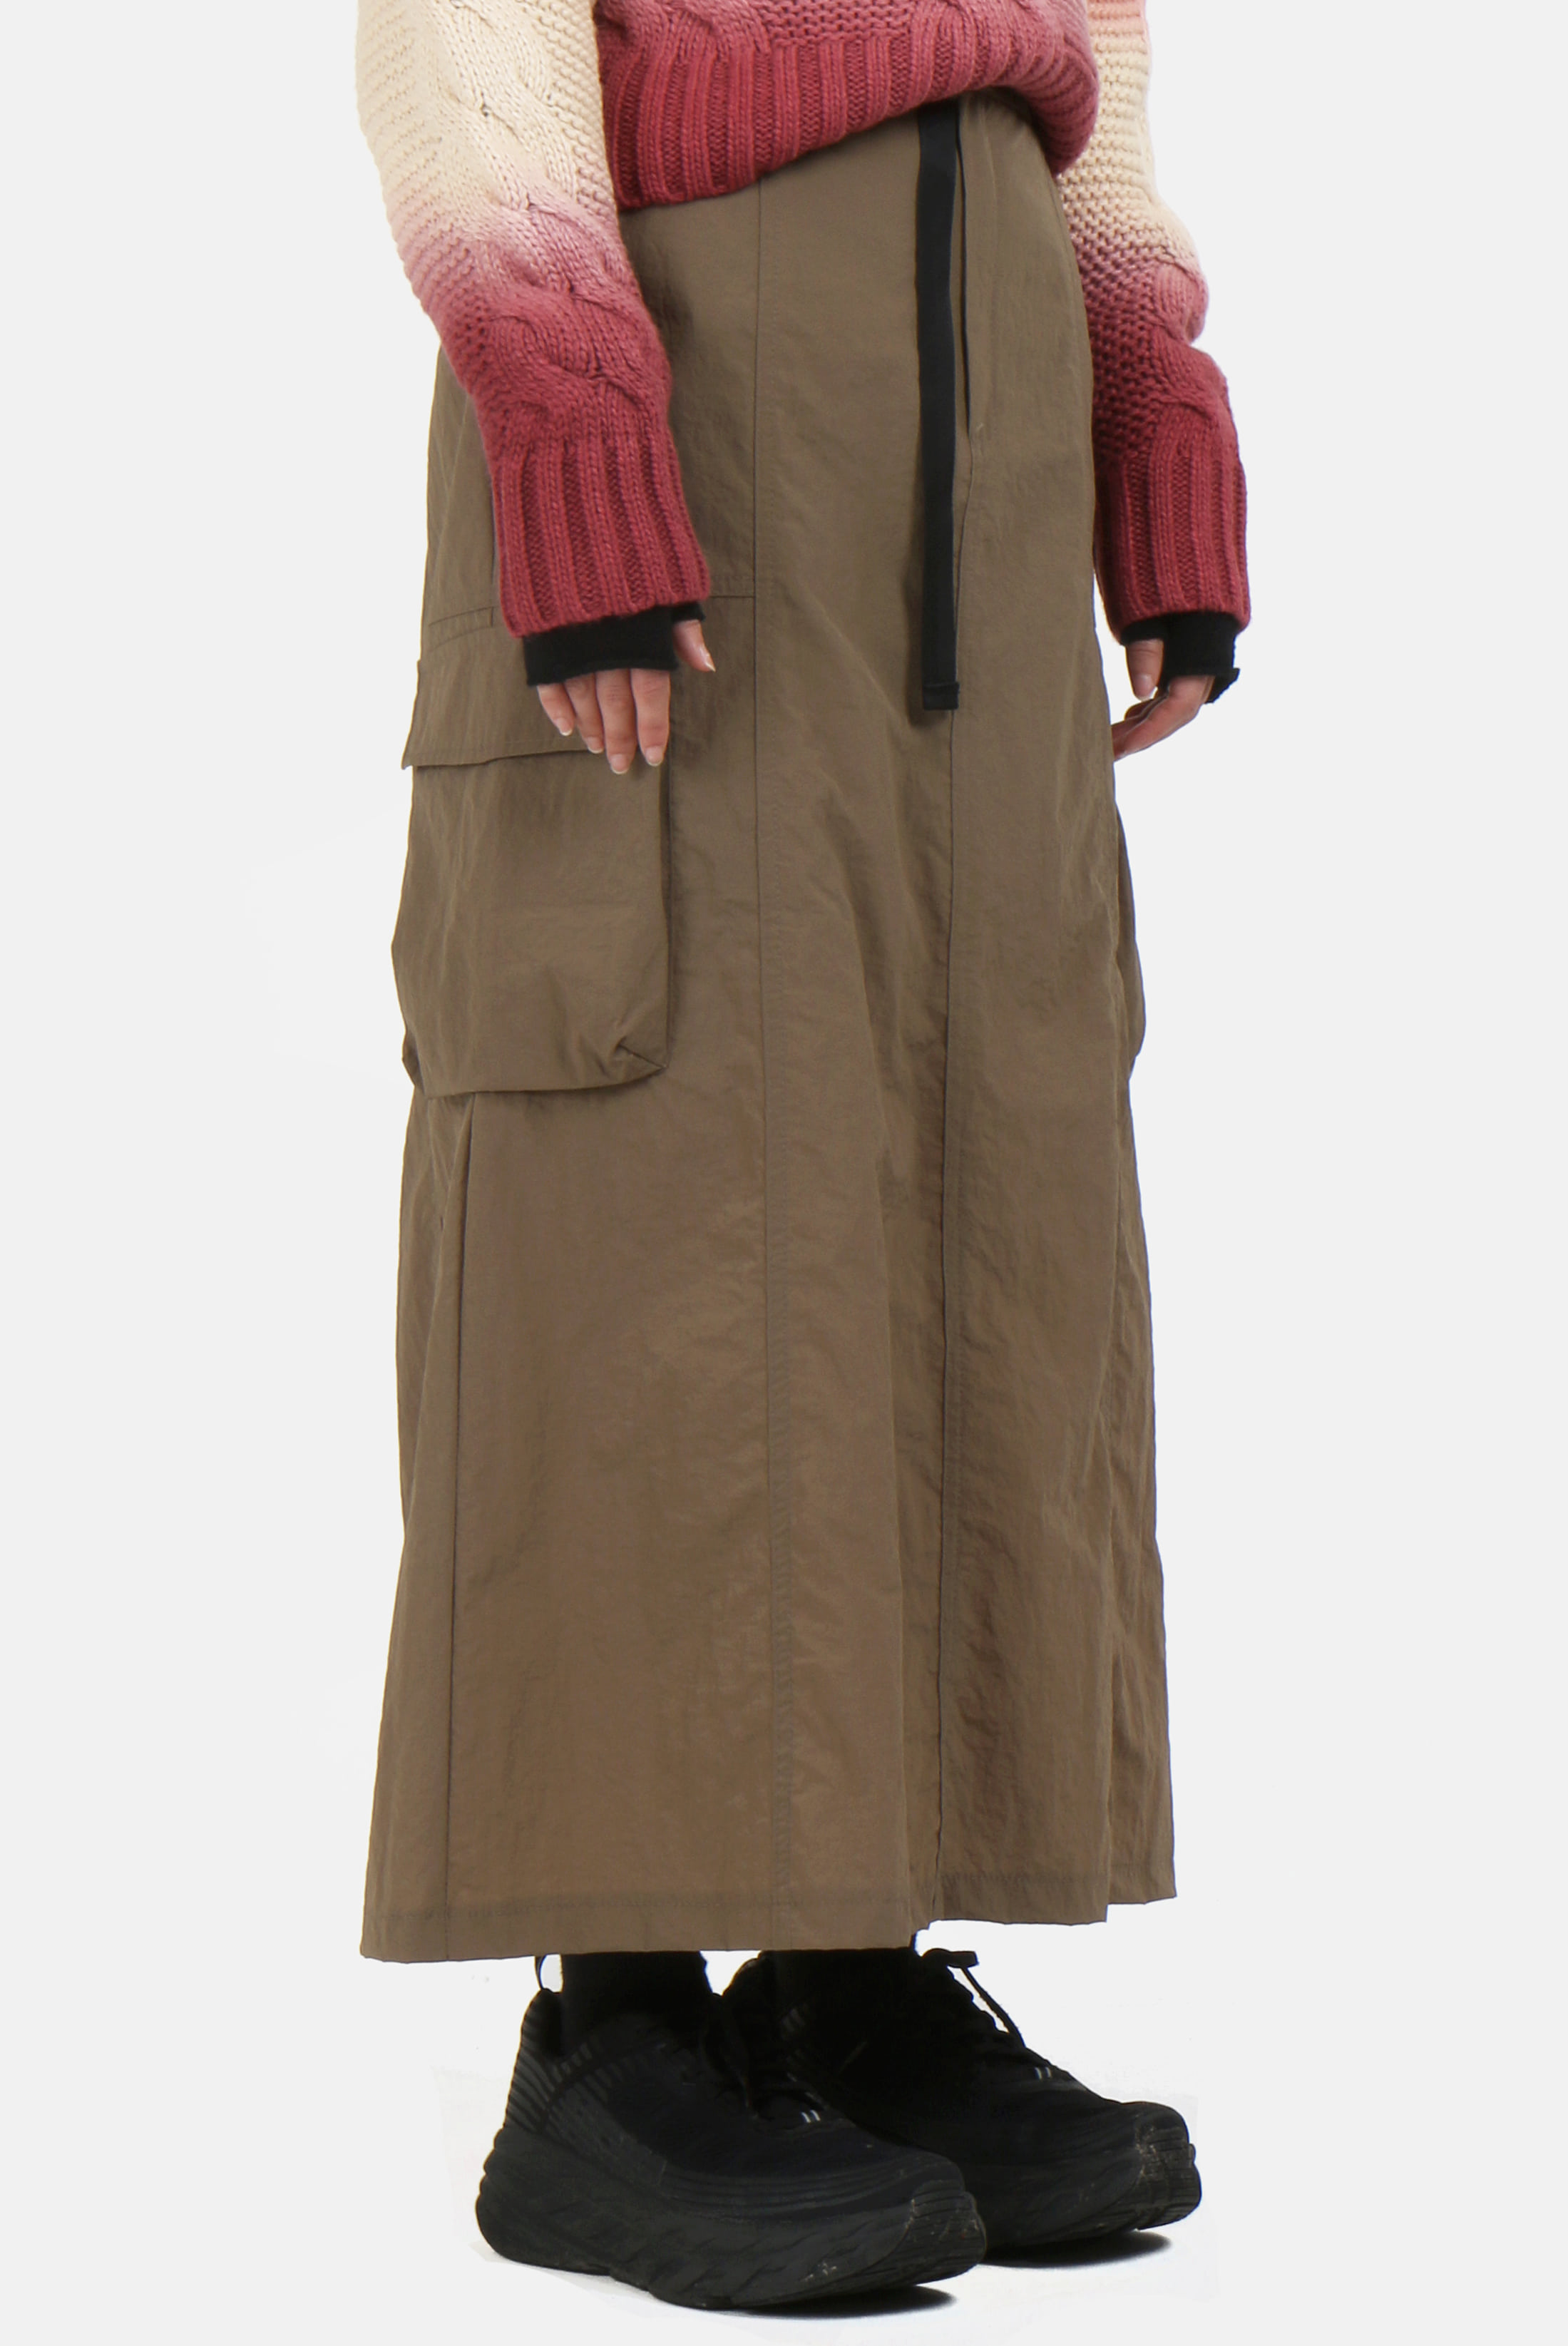 (W) Washer_Buckle Nylon Long_Skirt